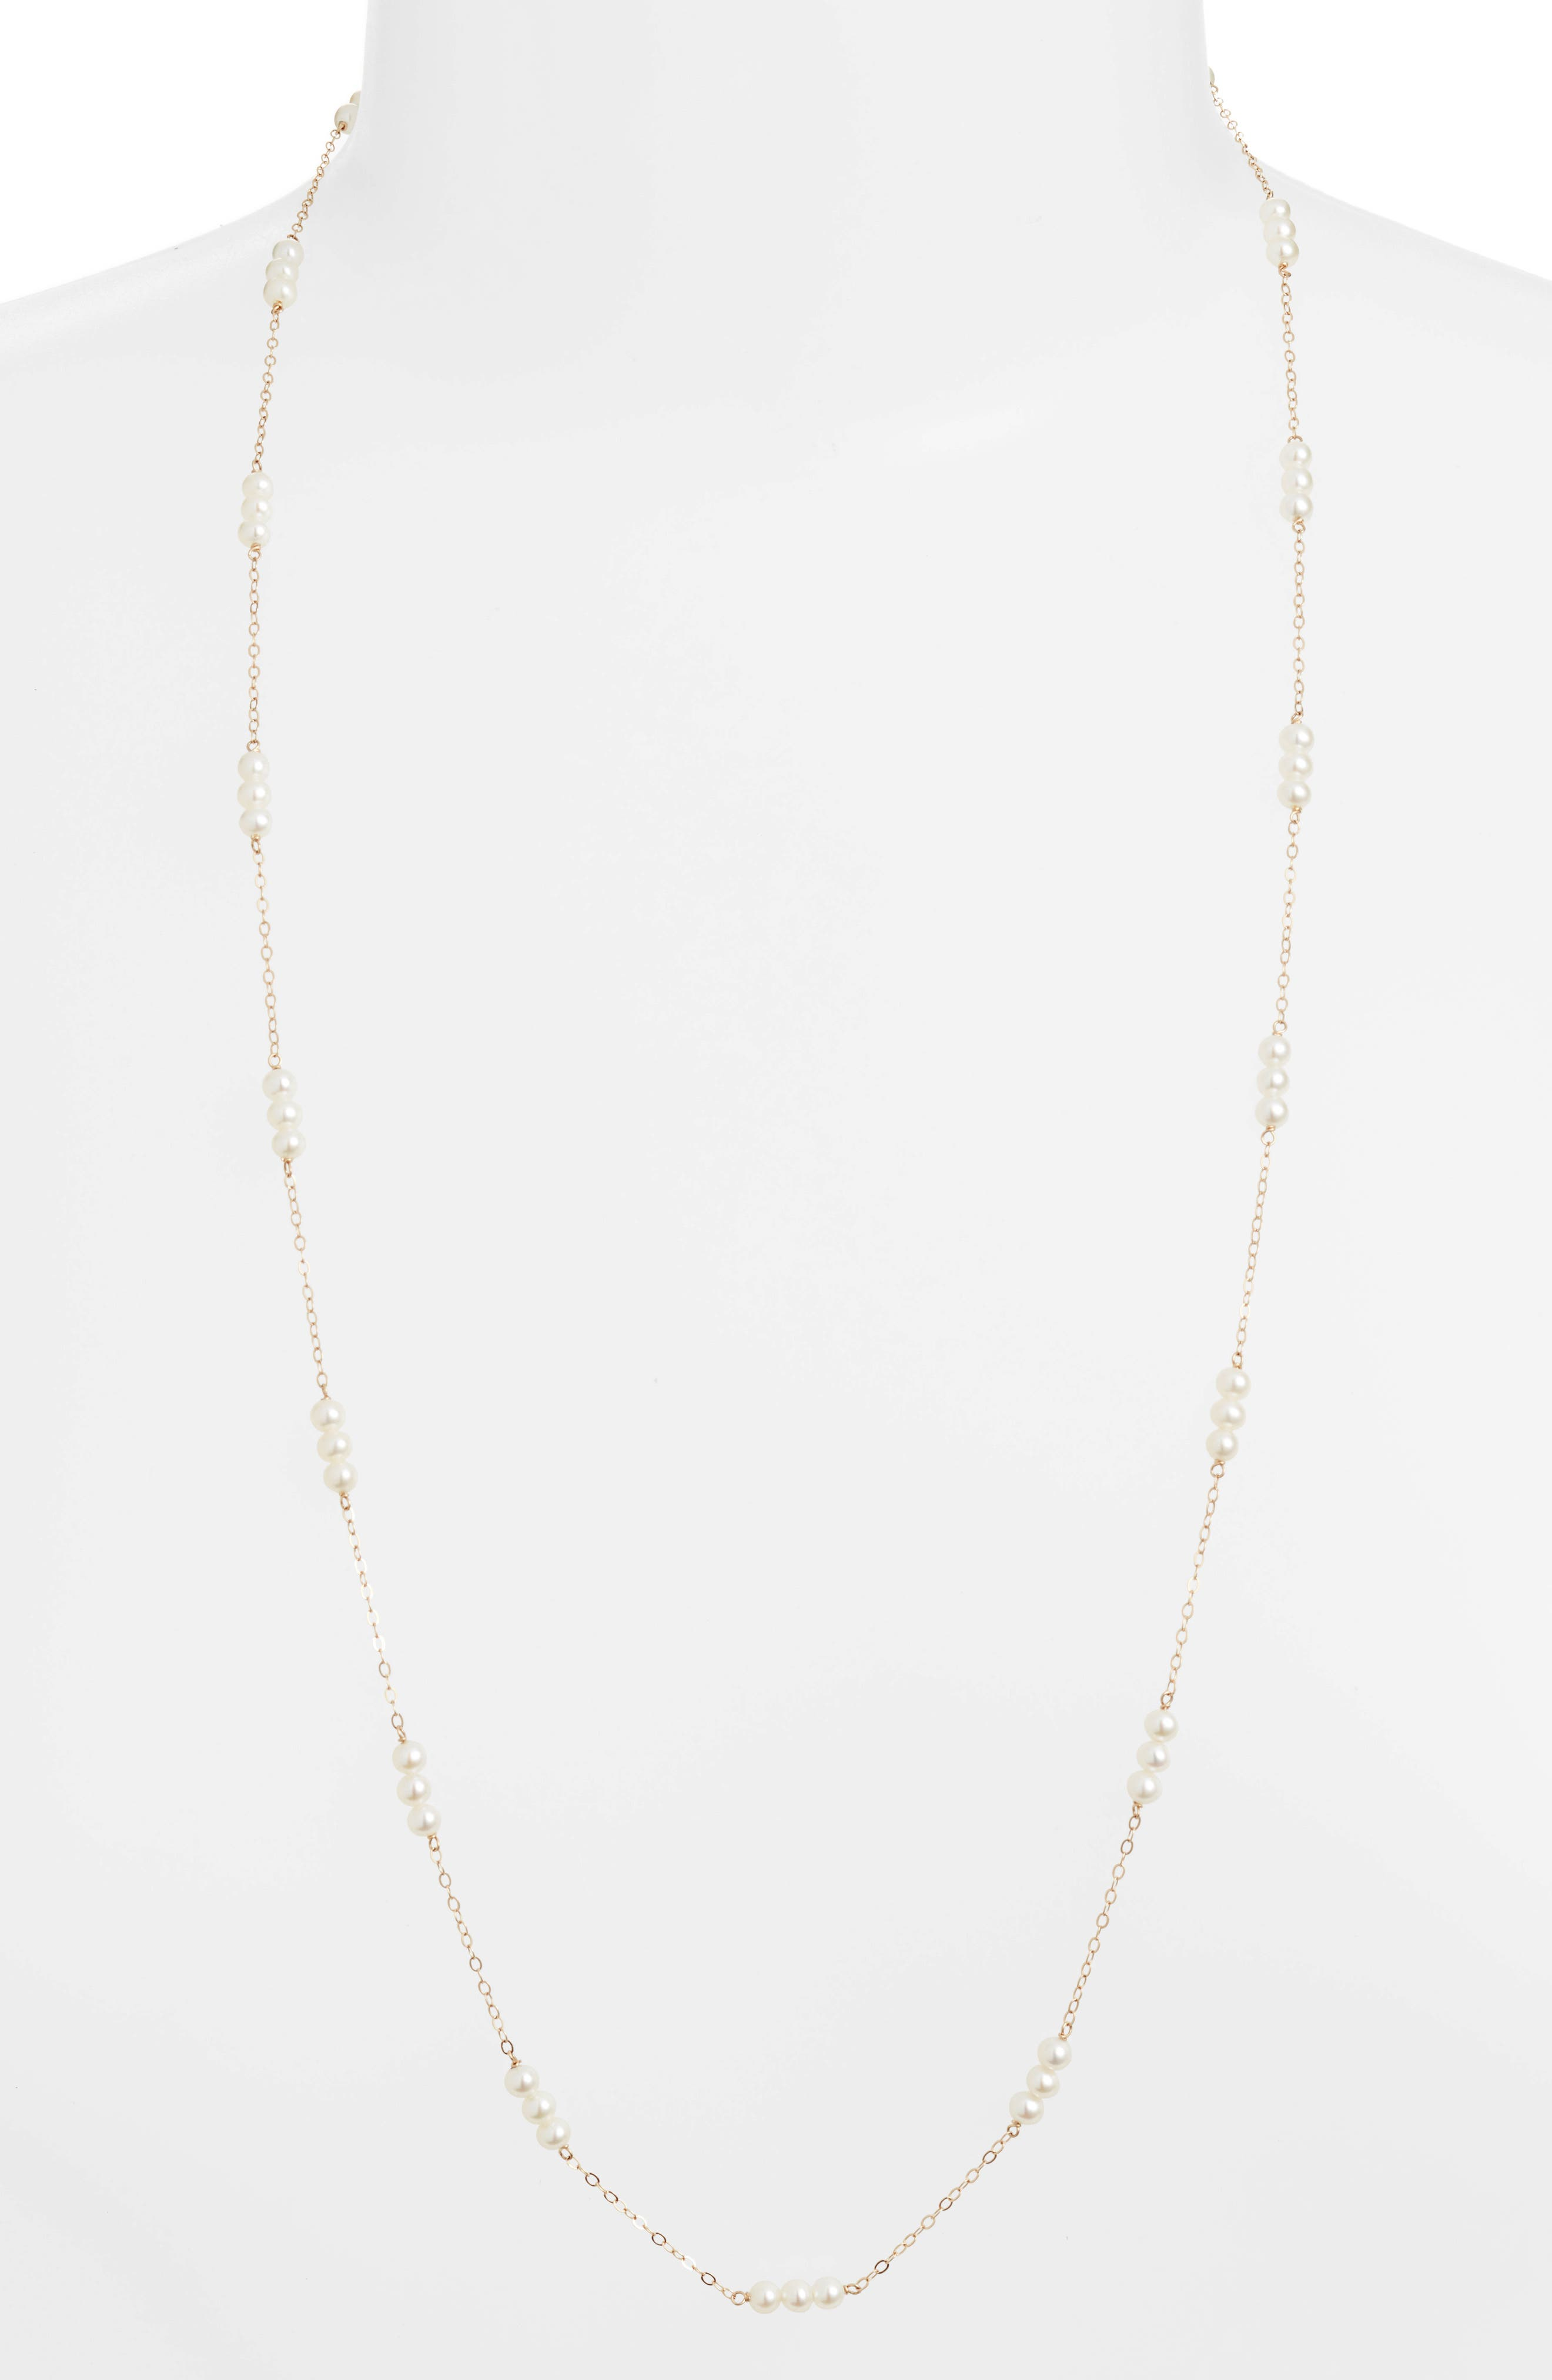 Pearl Triplet Necklace,                         Main,                         color, Yellow Gold/ White Pearl